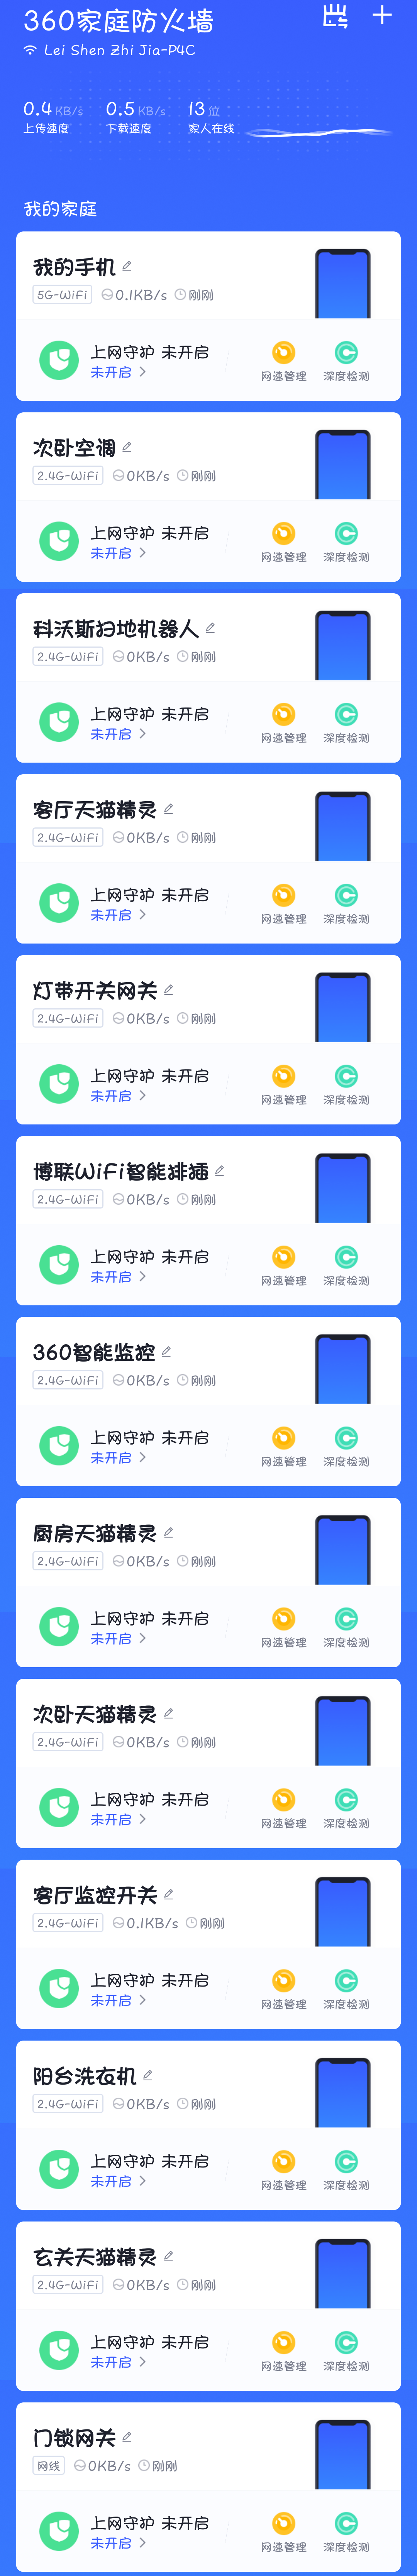 Screenshot_2019-01-22-20-45-39.png